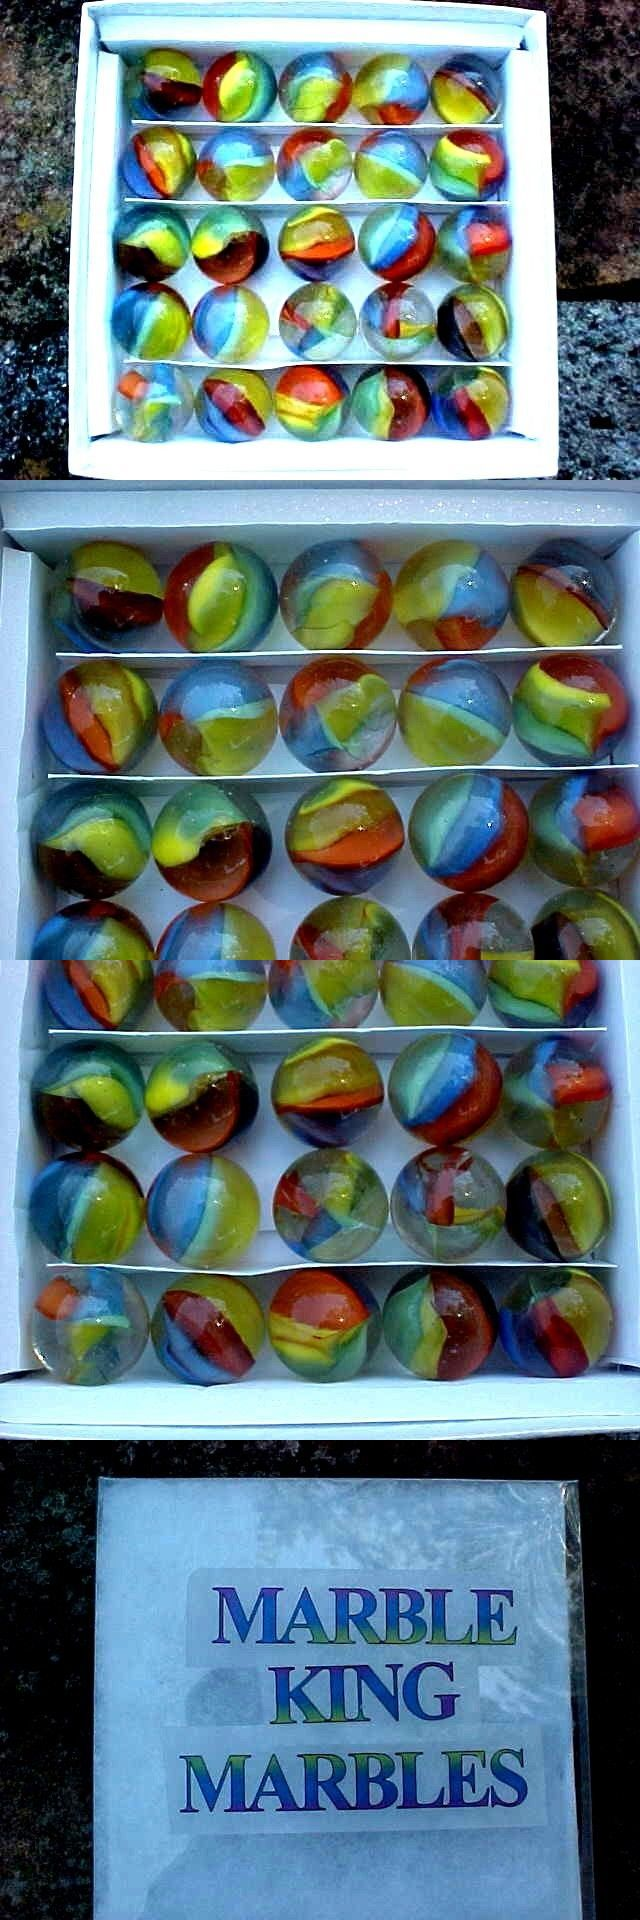 BOX SET OF 1999 MARBLE KING 4 COLOR ST MARYS MIMIC CATS EYE CAT EYE MARBLES